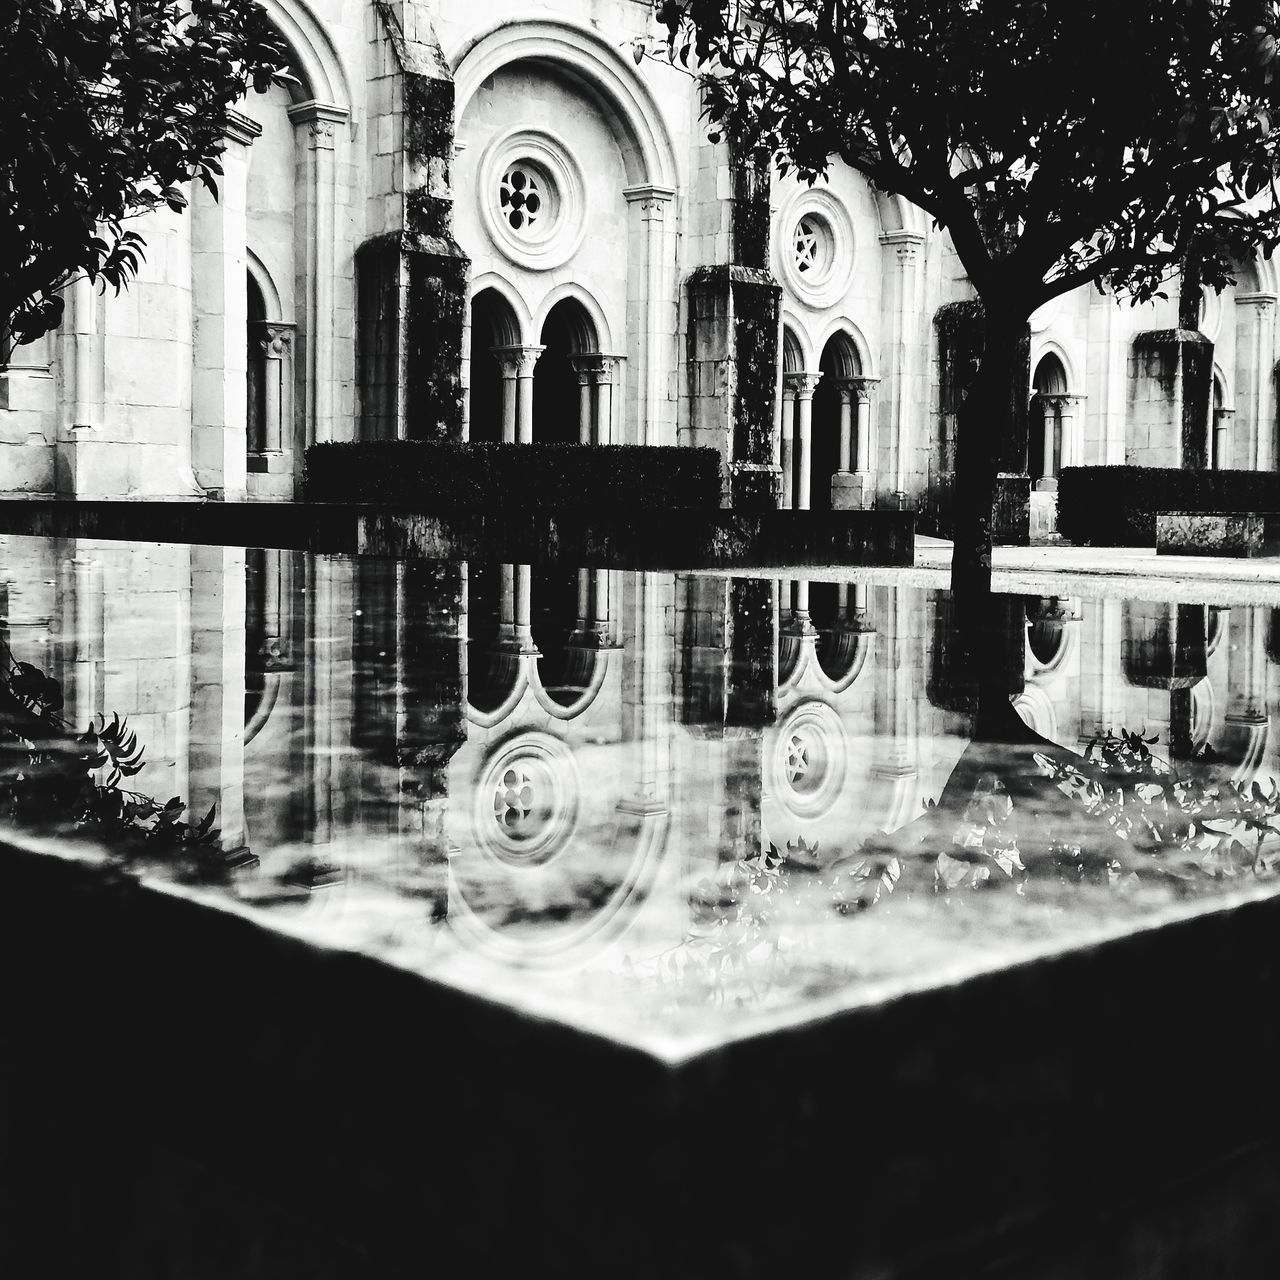 reflection, building exterior, architecture, built structure, no people, building, water, day, waterfront, outdoors, arch, city, transparent, nature, pond, religion, puddle, belief, place of worship, digital composite, ornate